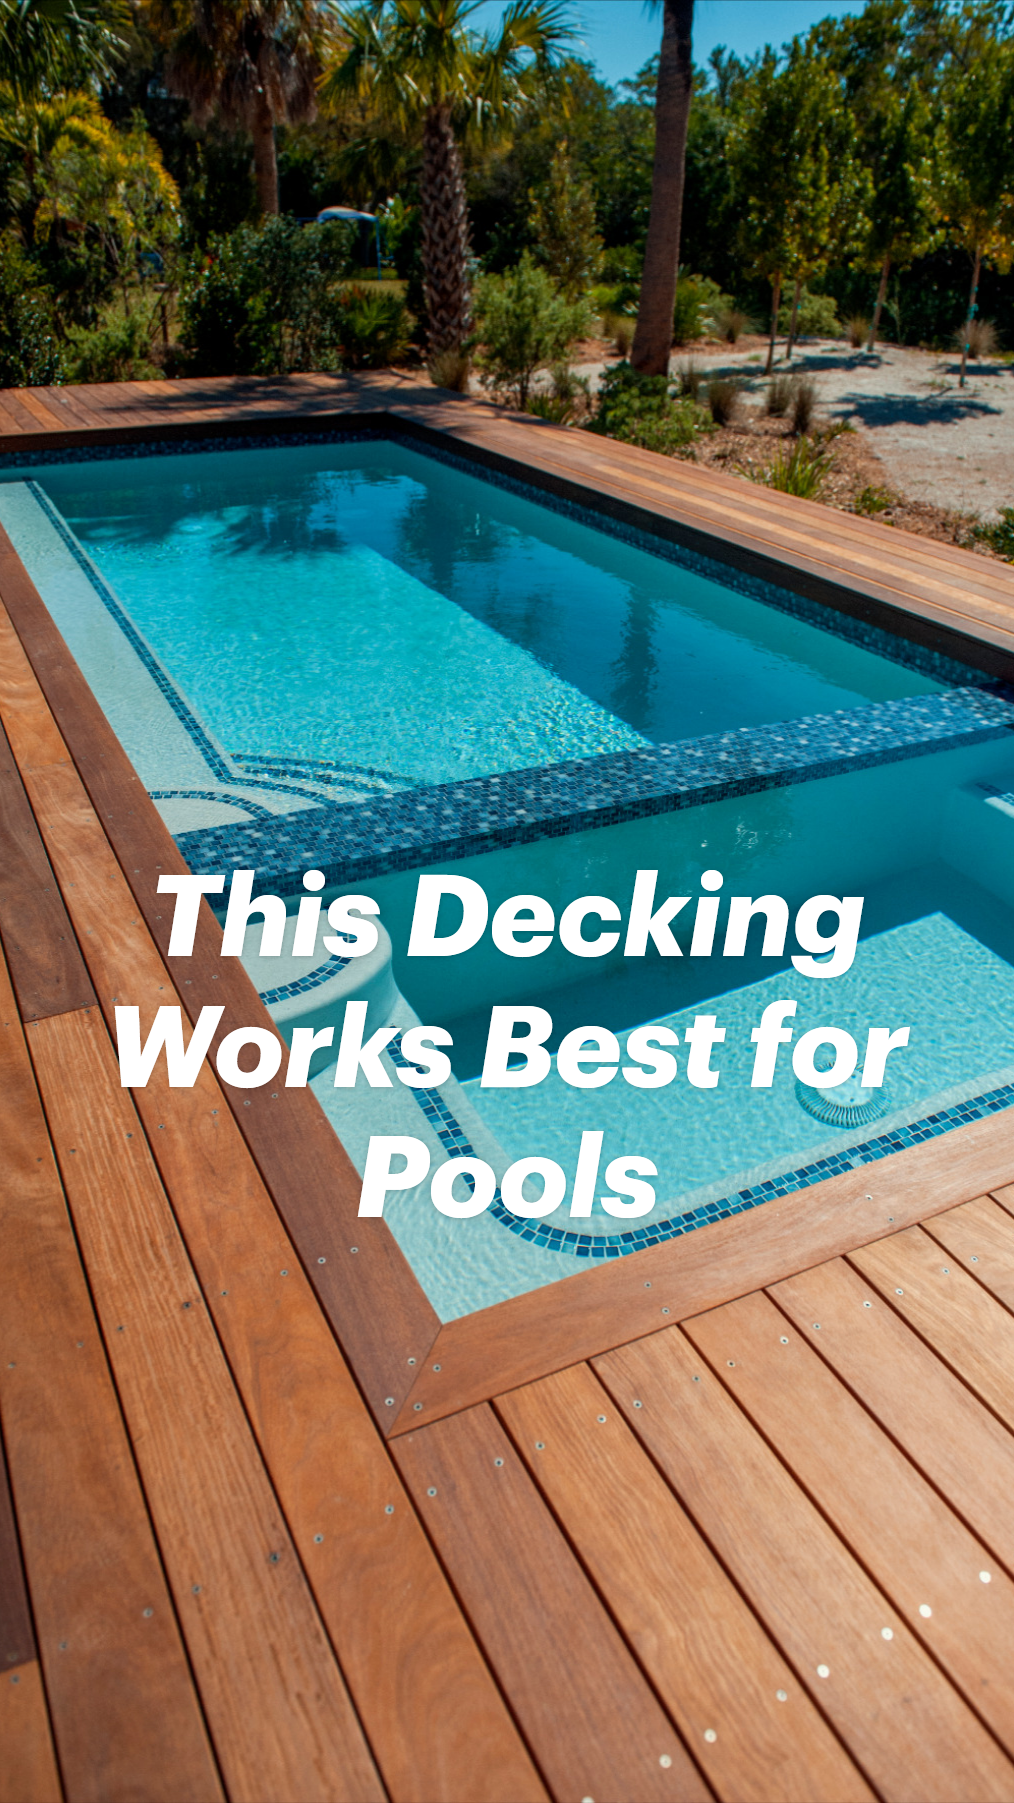 This Decking Works Best for Pools